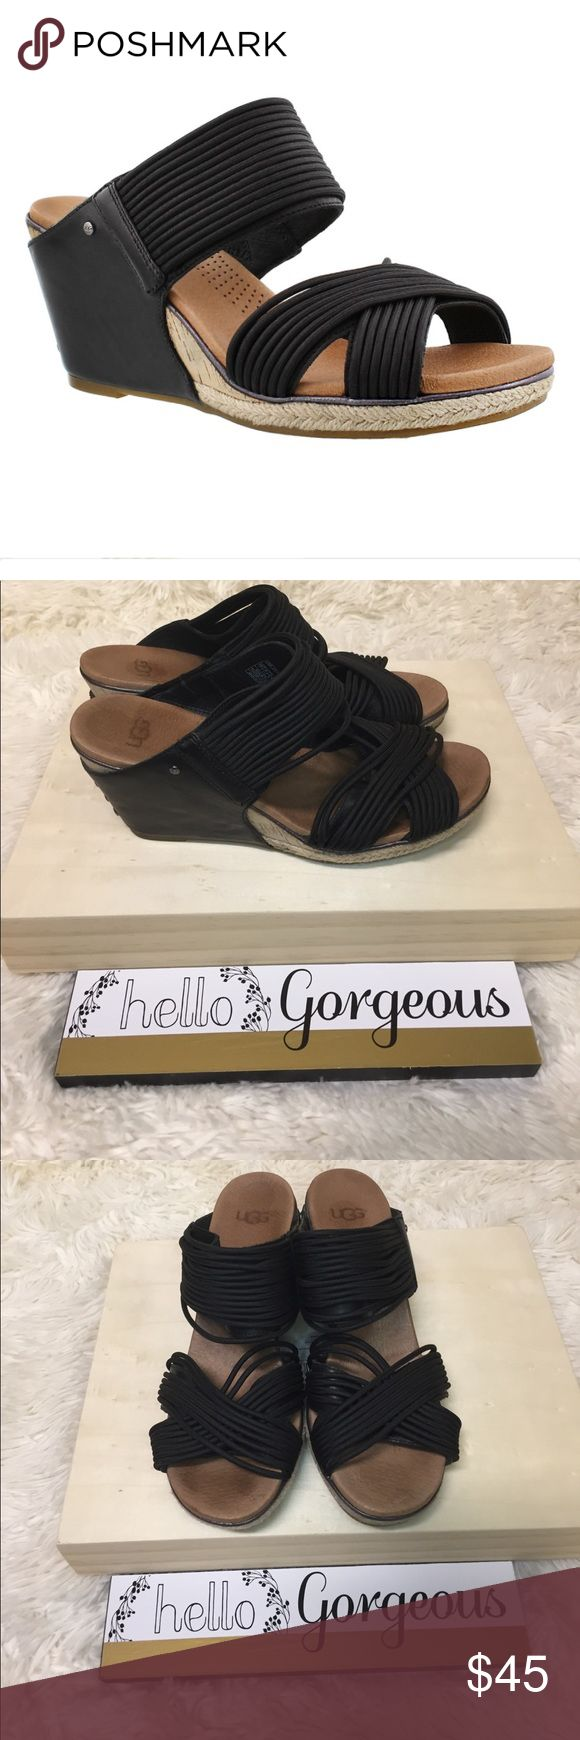 Womens Ugg Hilarie Black wedge slide sandals 7 Womens Ugg Hilarie Black wedge slide sandals size 7. Slip on construction elastic and leather upper jute and cork wrapped midsole insole cushioning poron foam with added arch support. UGG Shoes Sandals